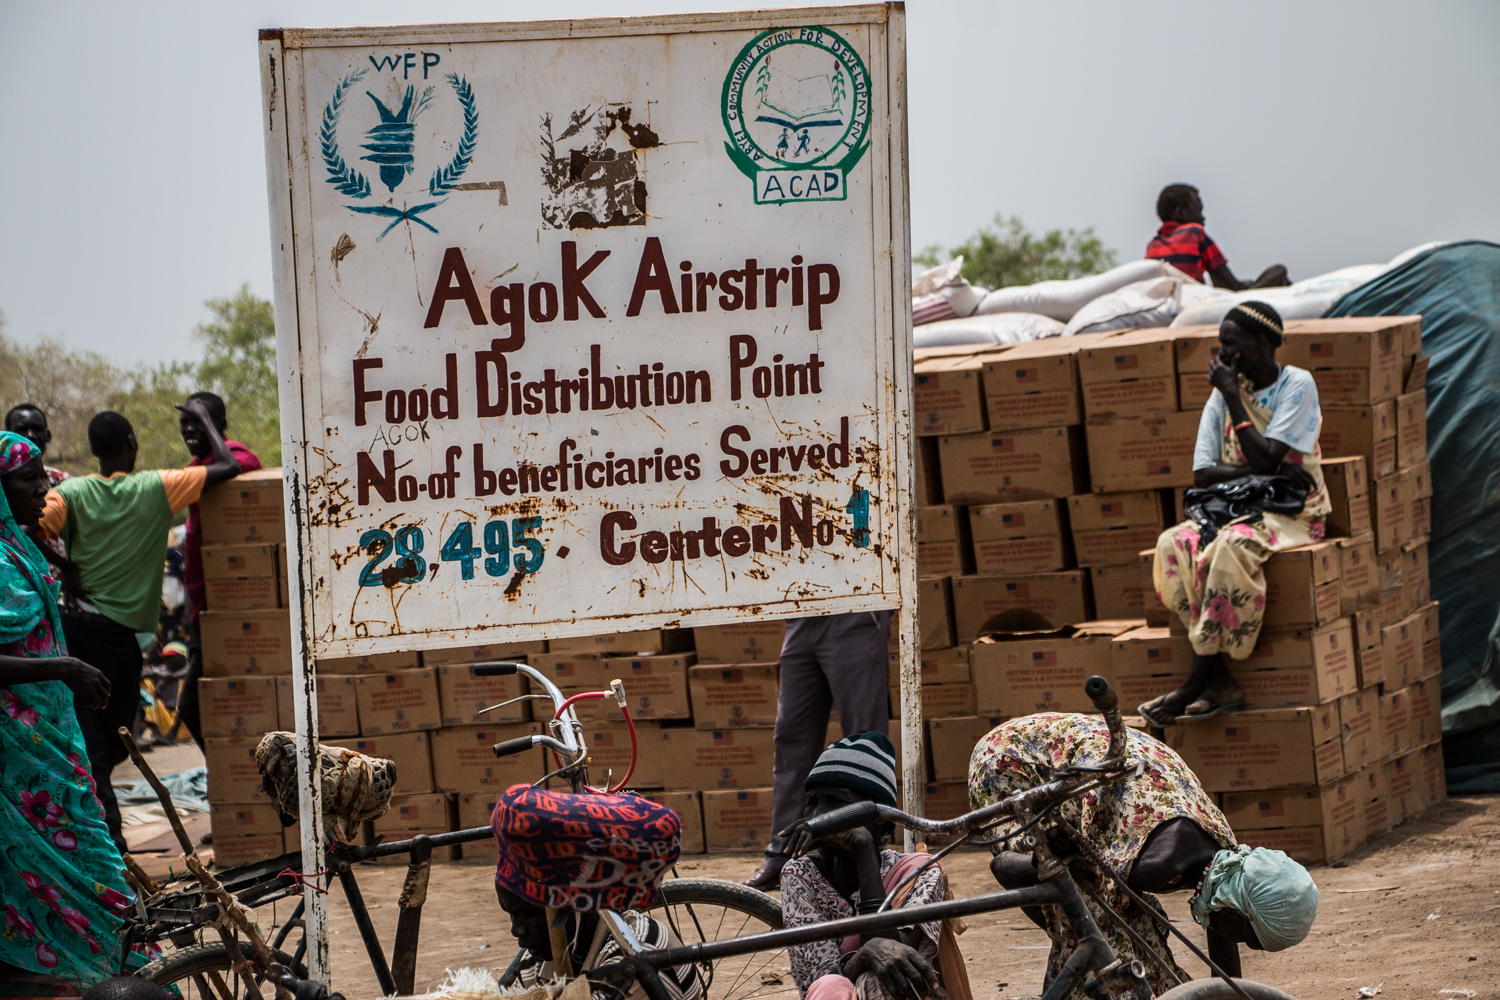 Agok, a settlement of mainly displaced people on the southern border of Abyei with South Sudan, hosts tens of thousands of families displaced by fighting inside Abyei and also from South Sudan's troubled northern states. [Ashley Hamer/Al Jazeera]